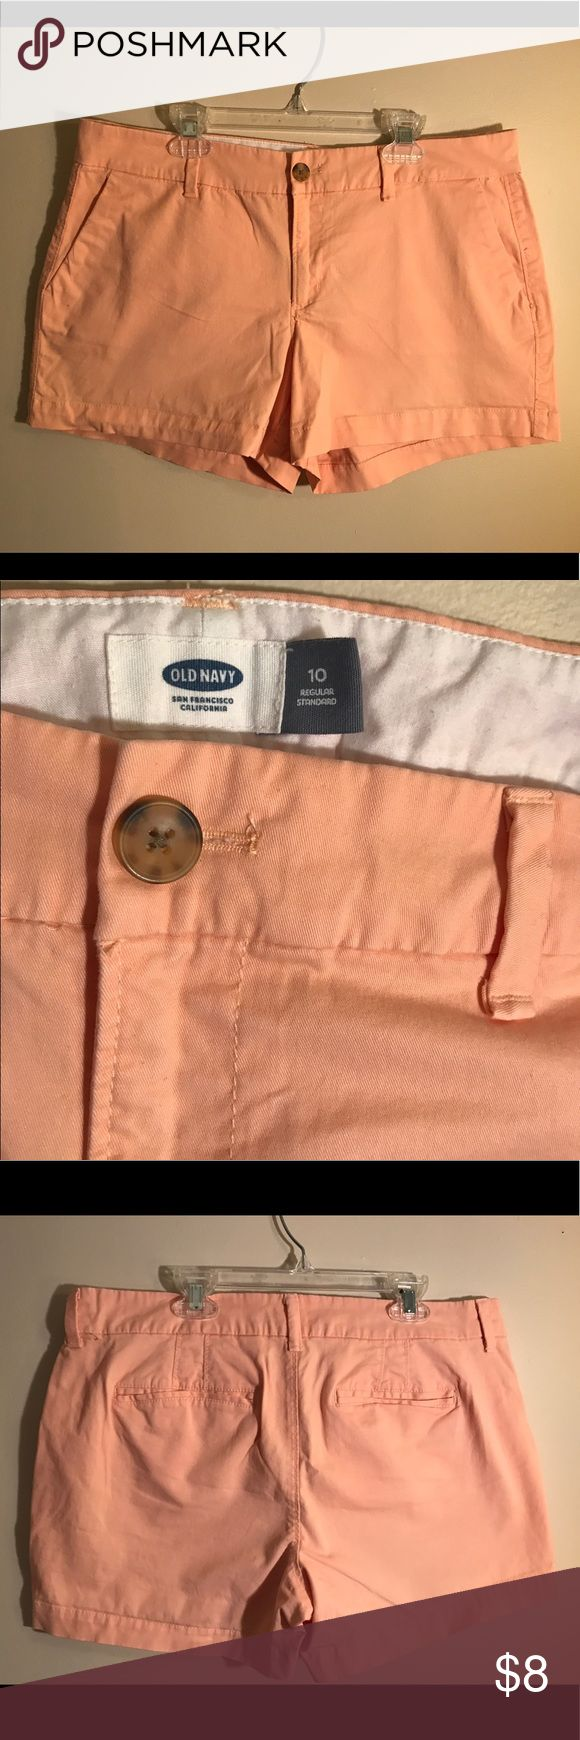 Old Navy peach shorts Patch colored Old Navy shorts with pockets, size 10 Old Navy Shorts